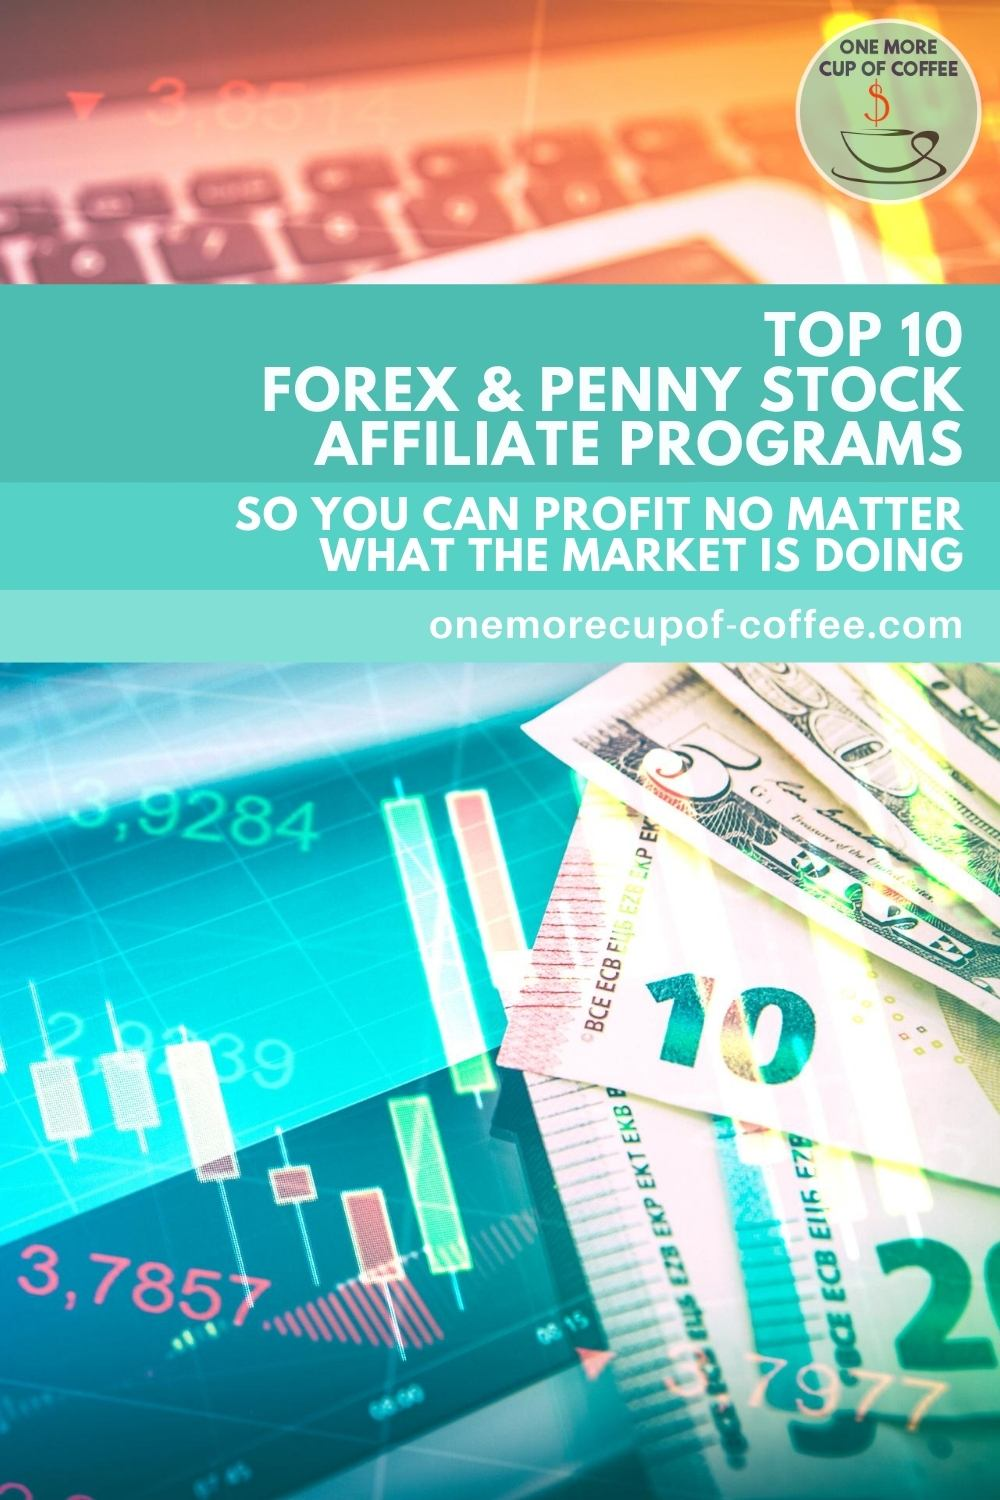 """paper bills on top of a tablet with forex trading graphs on it, with text overlay """"Top 10 Forex & Penny Stock Affiliate Programs So You Can Profit No Matter What The Market Is Doing"""""""